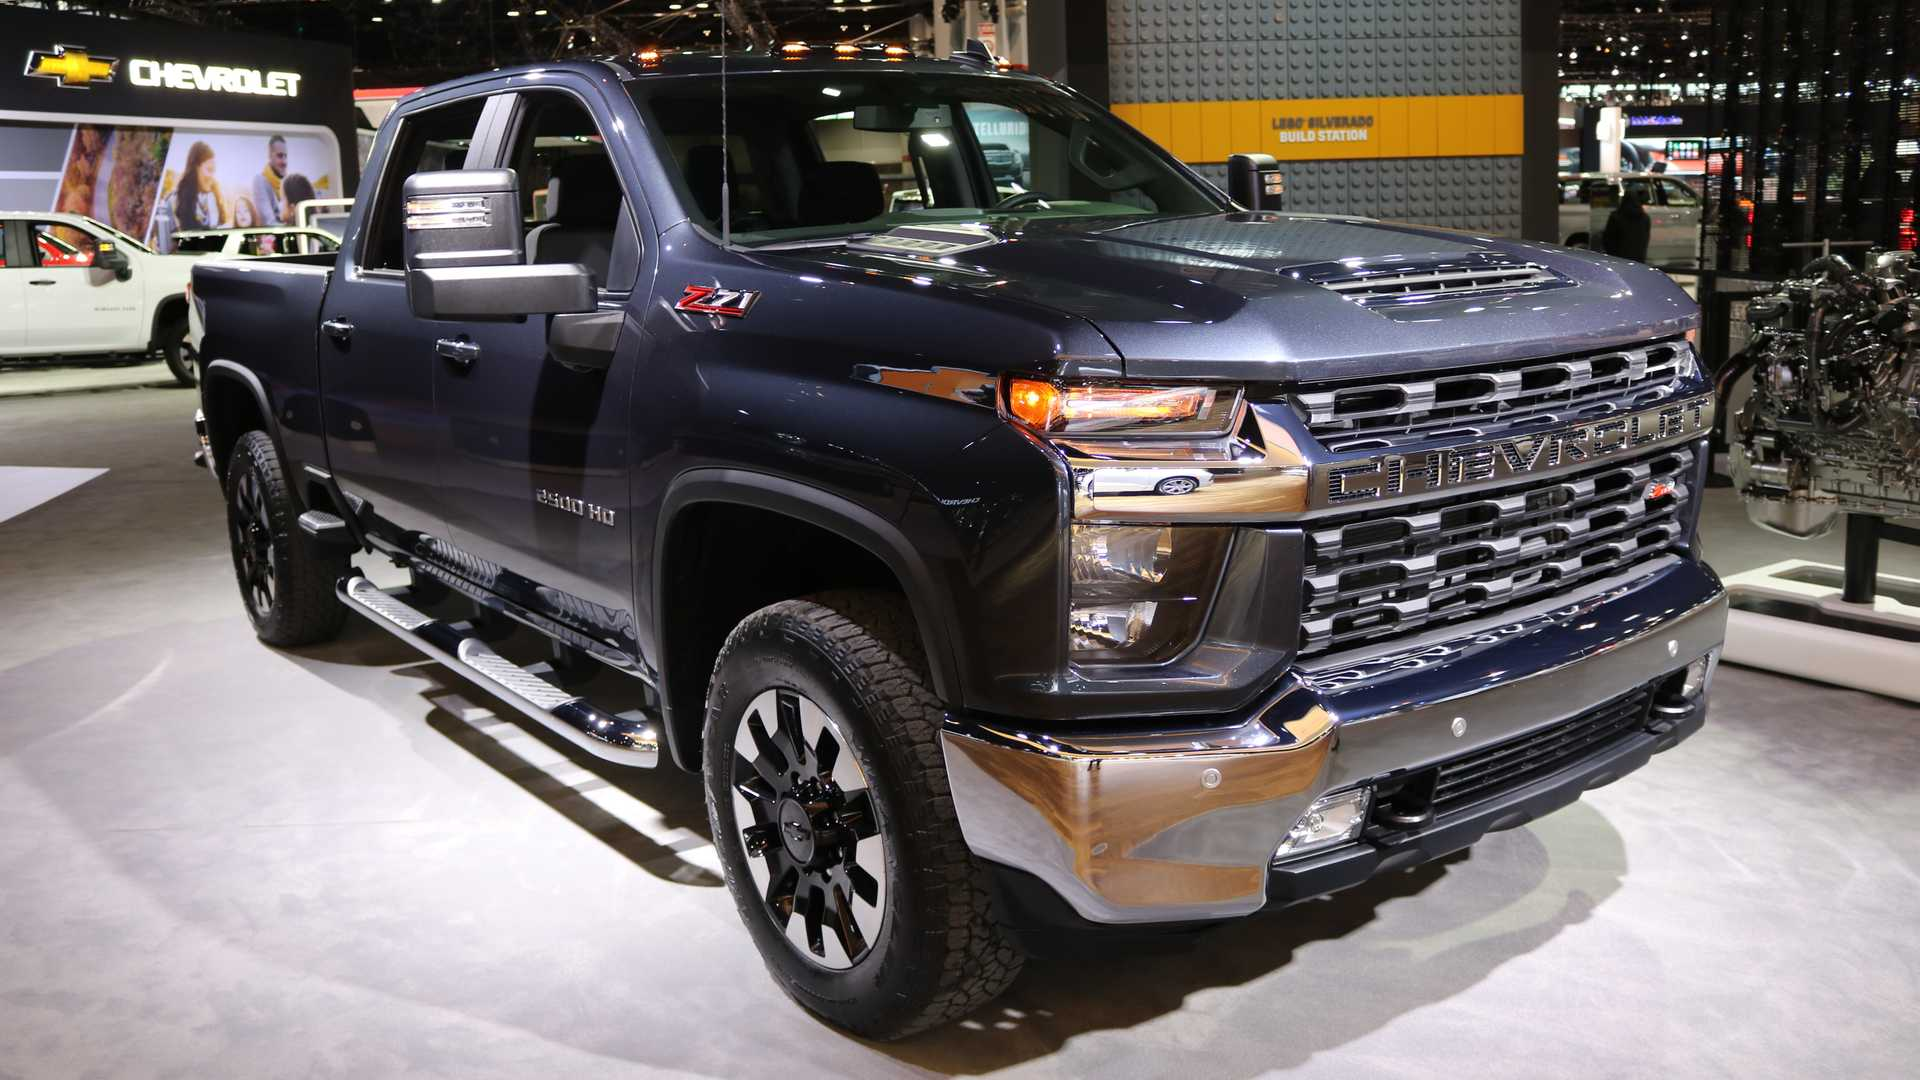 66 All New 2020 Chevrolet Silverado Concept